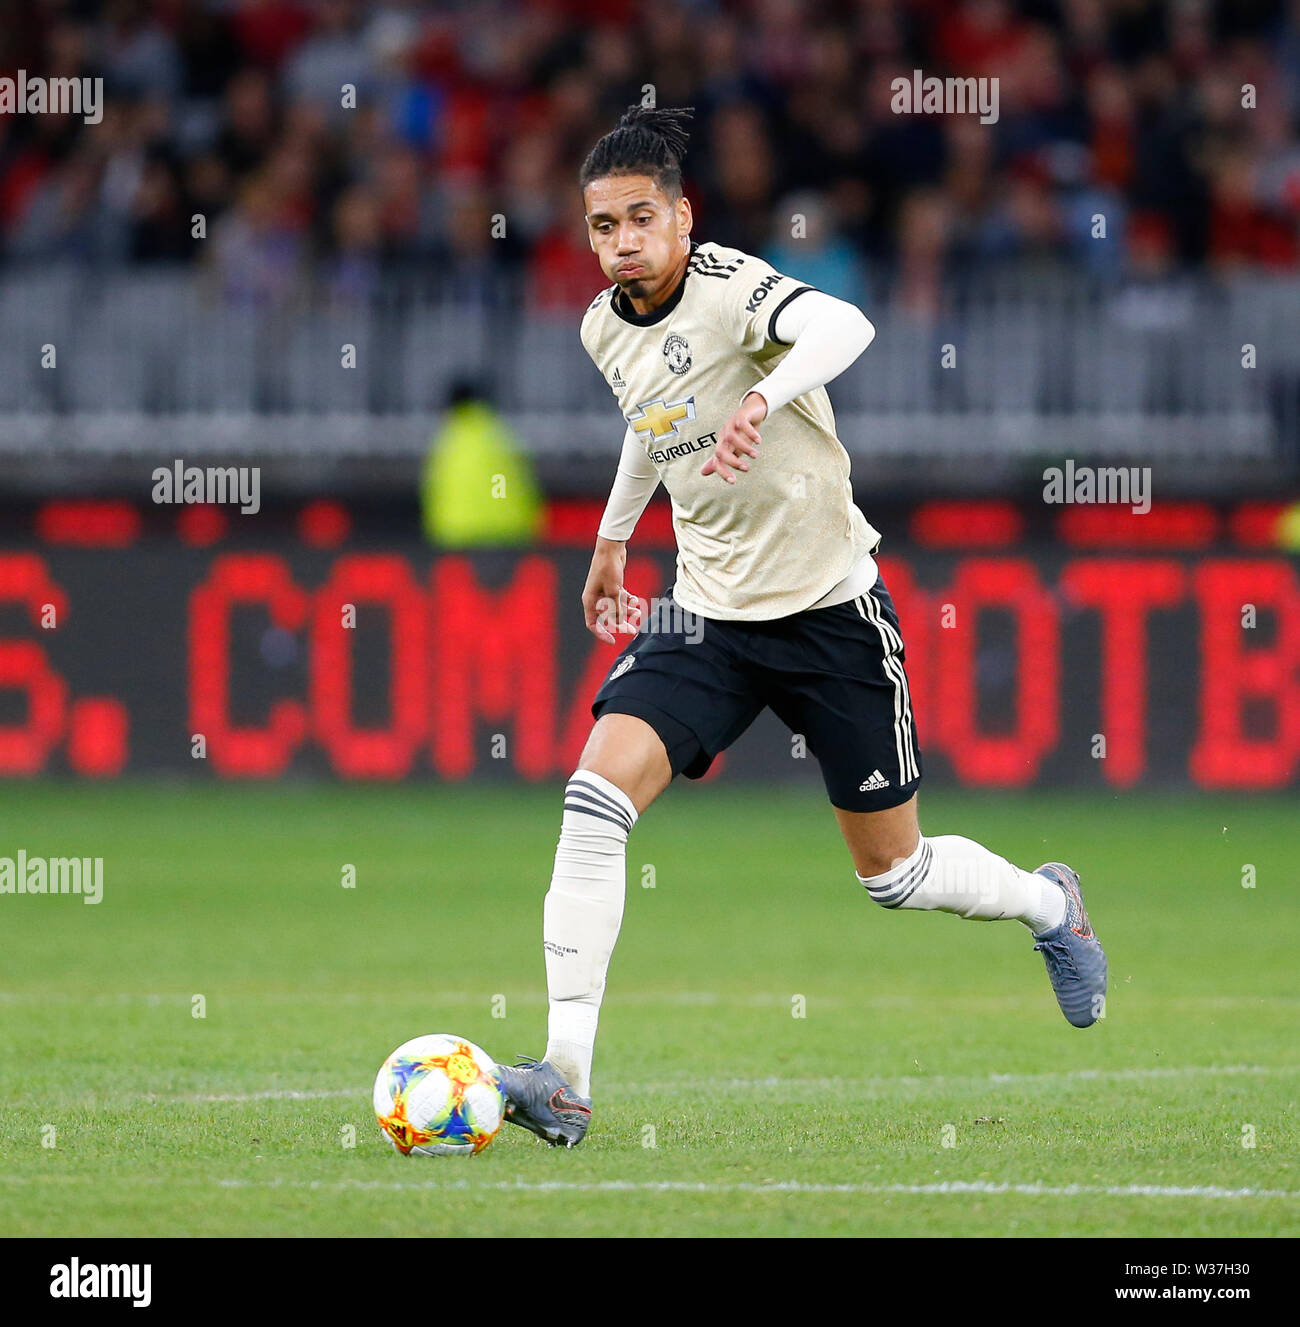 Optus Stadium, Perth, Western Australia. 13th July, 201913th July 2019, Optus Stadium, Perth, Western Australia; Pre-season friendly football, Perth Glory versus Manchester United; Chris Smalling of Manchester United runs with the ball Credit: Action Plus Sports Images/Alamy Live News Stock Photo